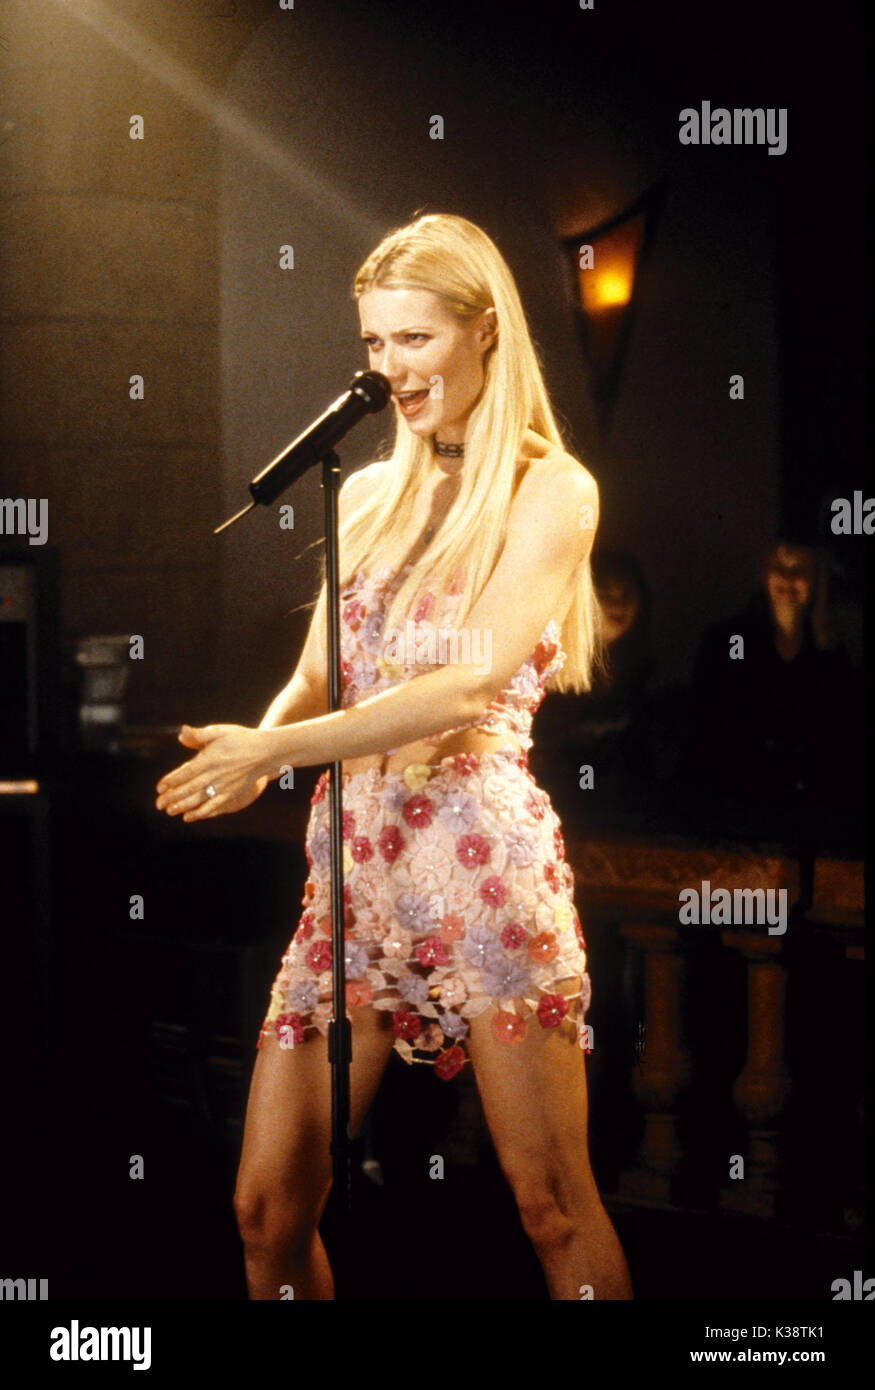 DUETS GWYNETH PALTROW     Date: 2000 - Stock Image